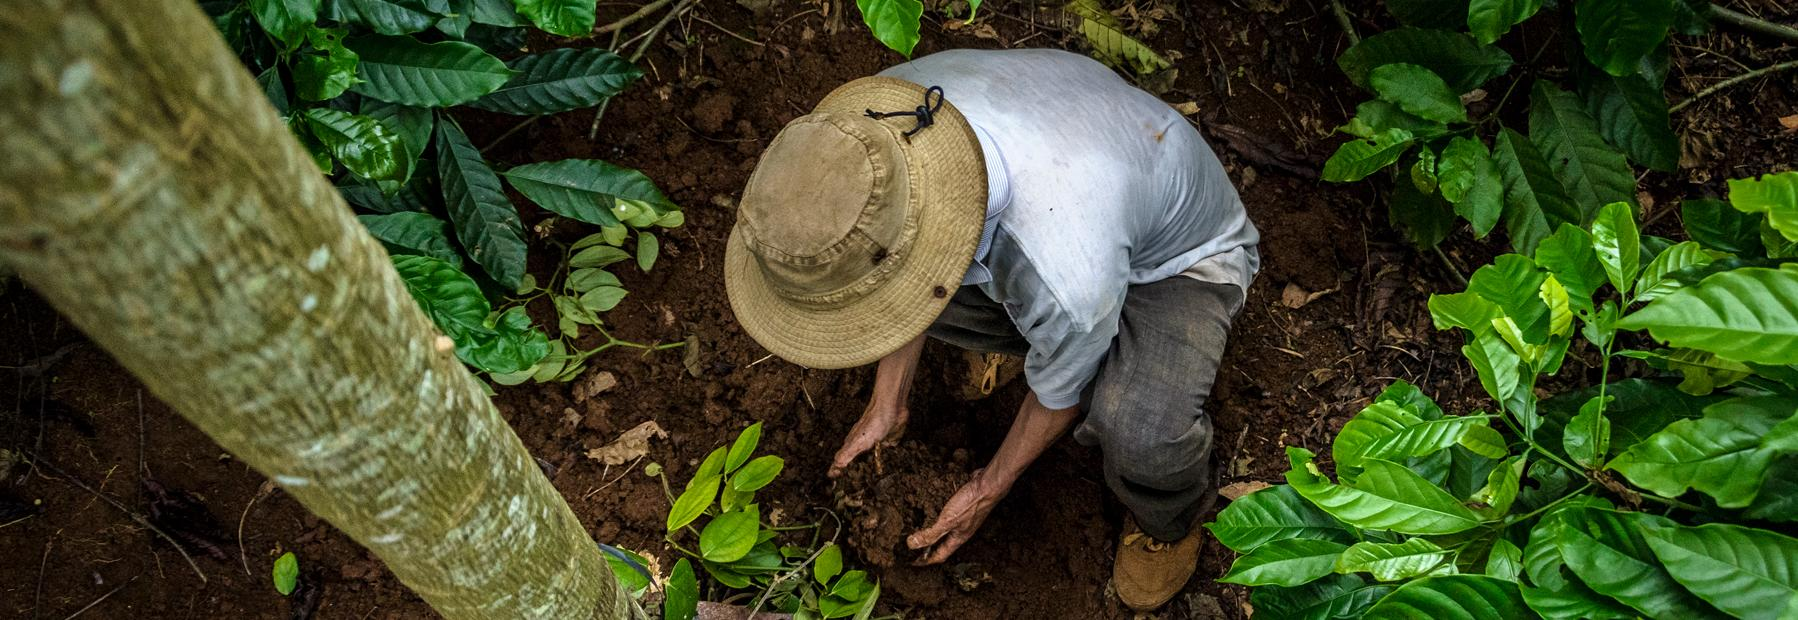 Farmer with hands in soil © Carlos Rubio and Global Coffee Platform.jpg